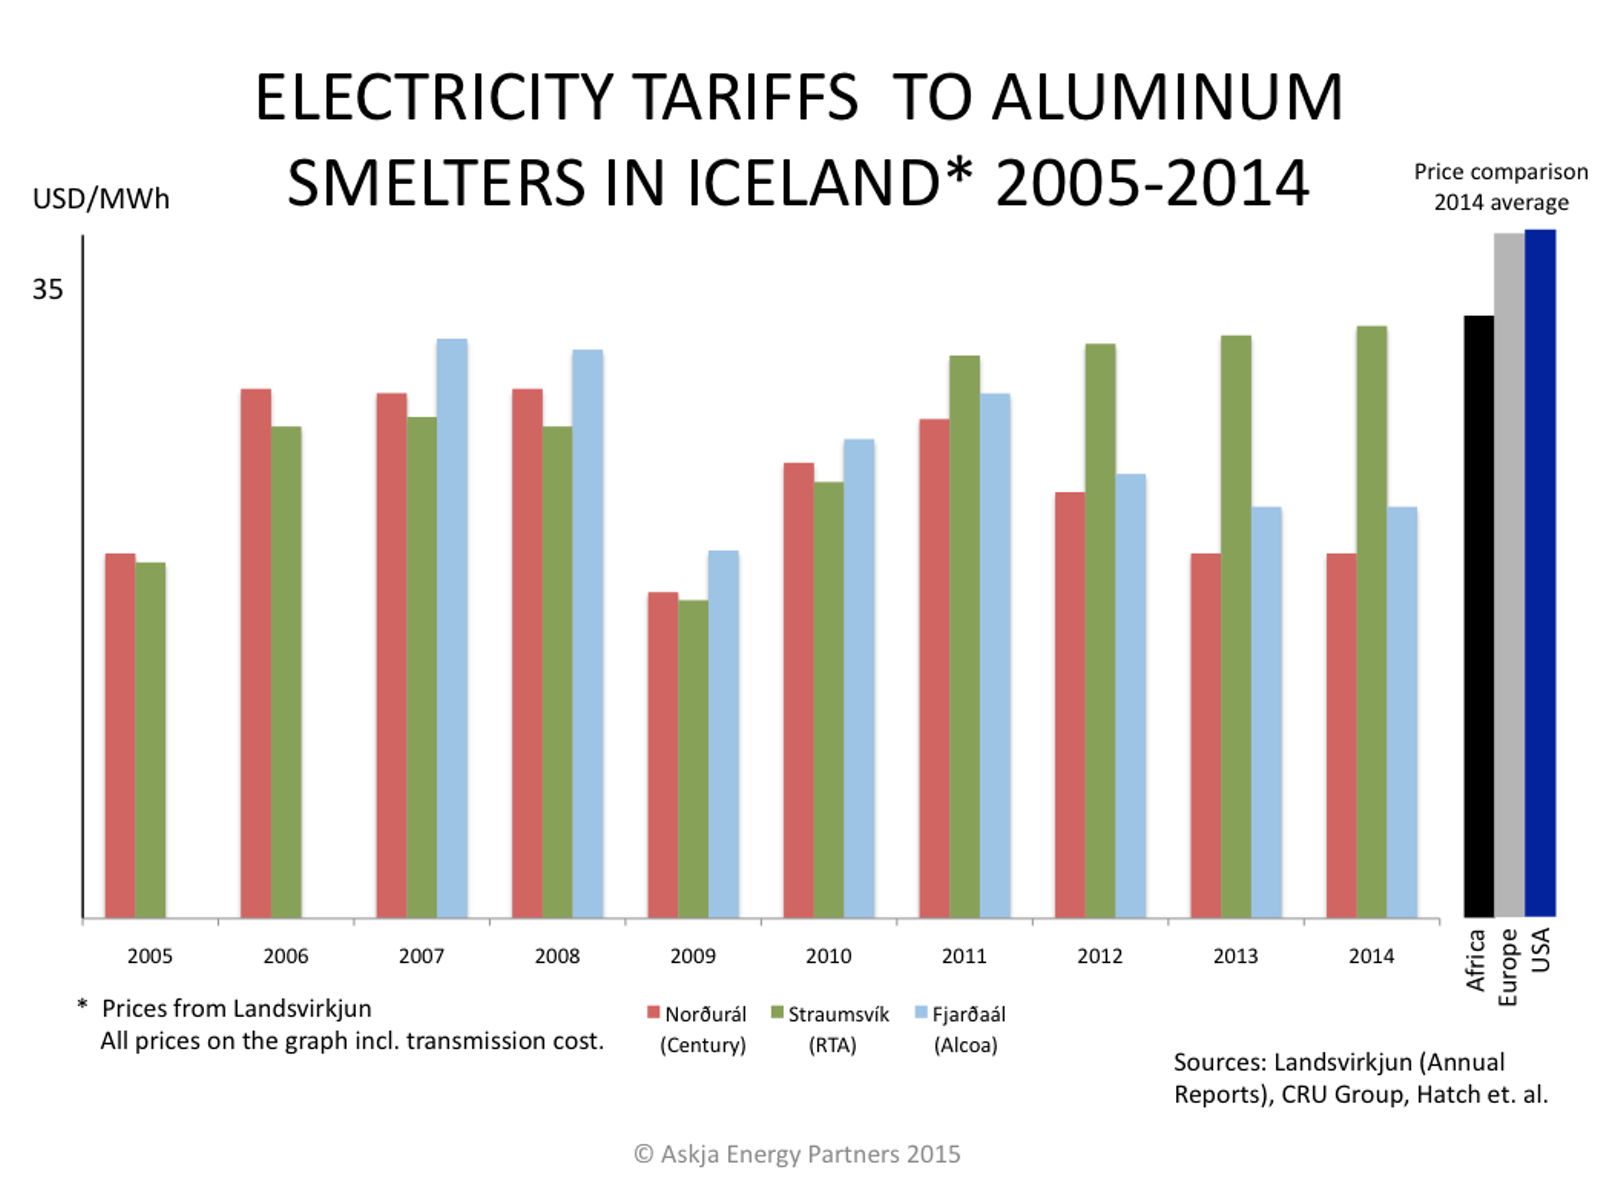 Aluminum-Electricity-Tariffs-to-Smelters-in-Iceland_2005-2014_and-World-Comparison_Askja-Energy-Partners-Current-2015